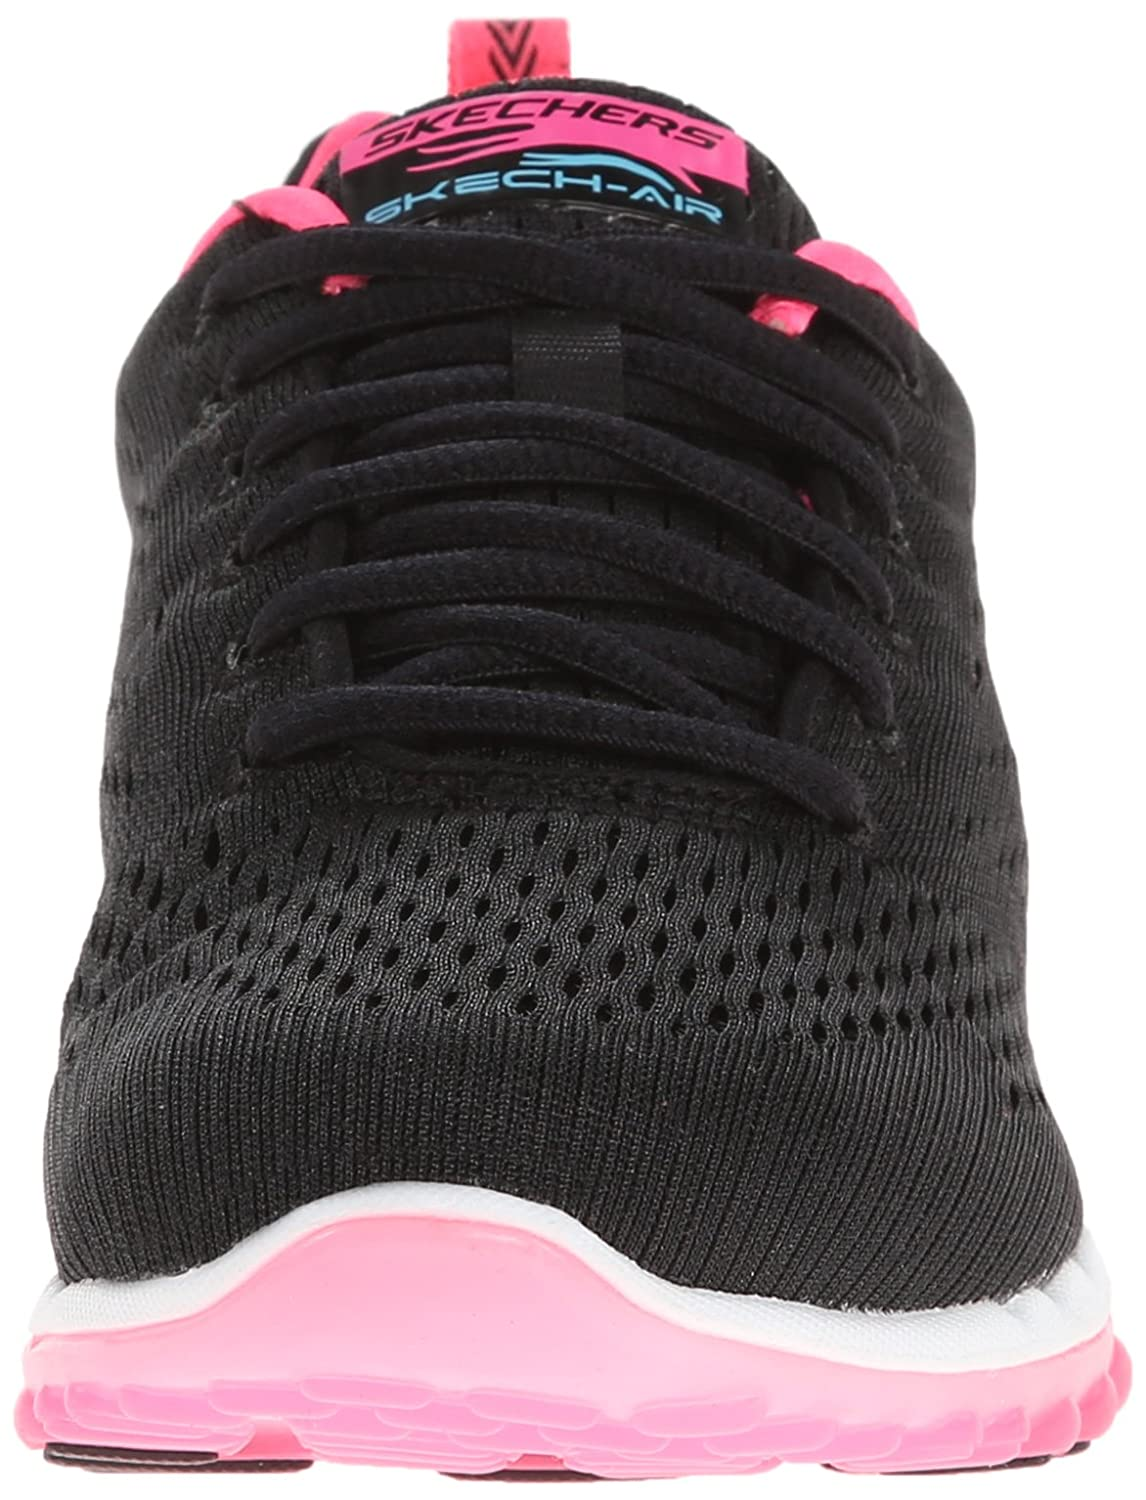 Skechers Sport Women's Skech Air Run High Fashion Sneaker B00MXVI8IU 6 B(M) US|Black Mesh/Hot Pink Trim